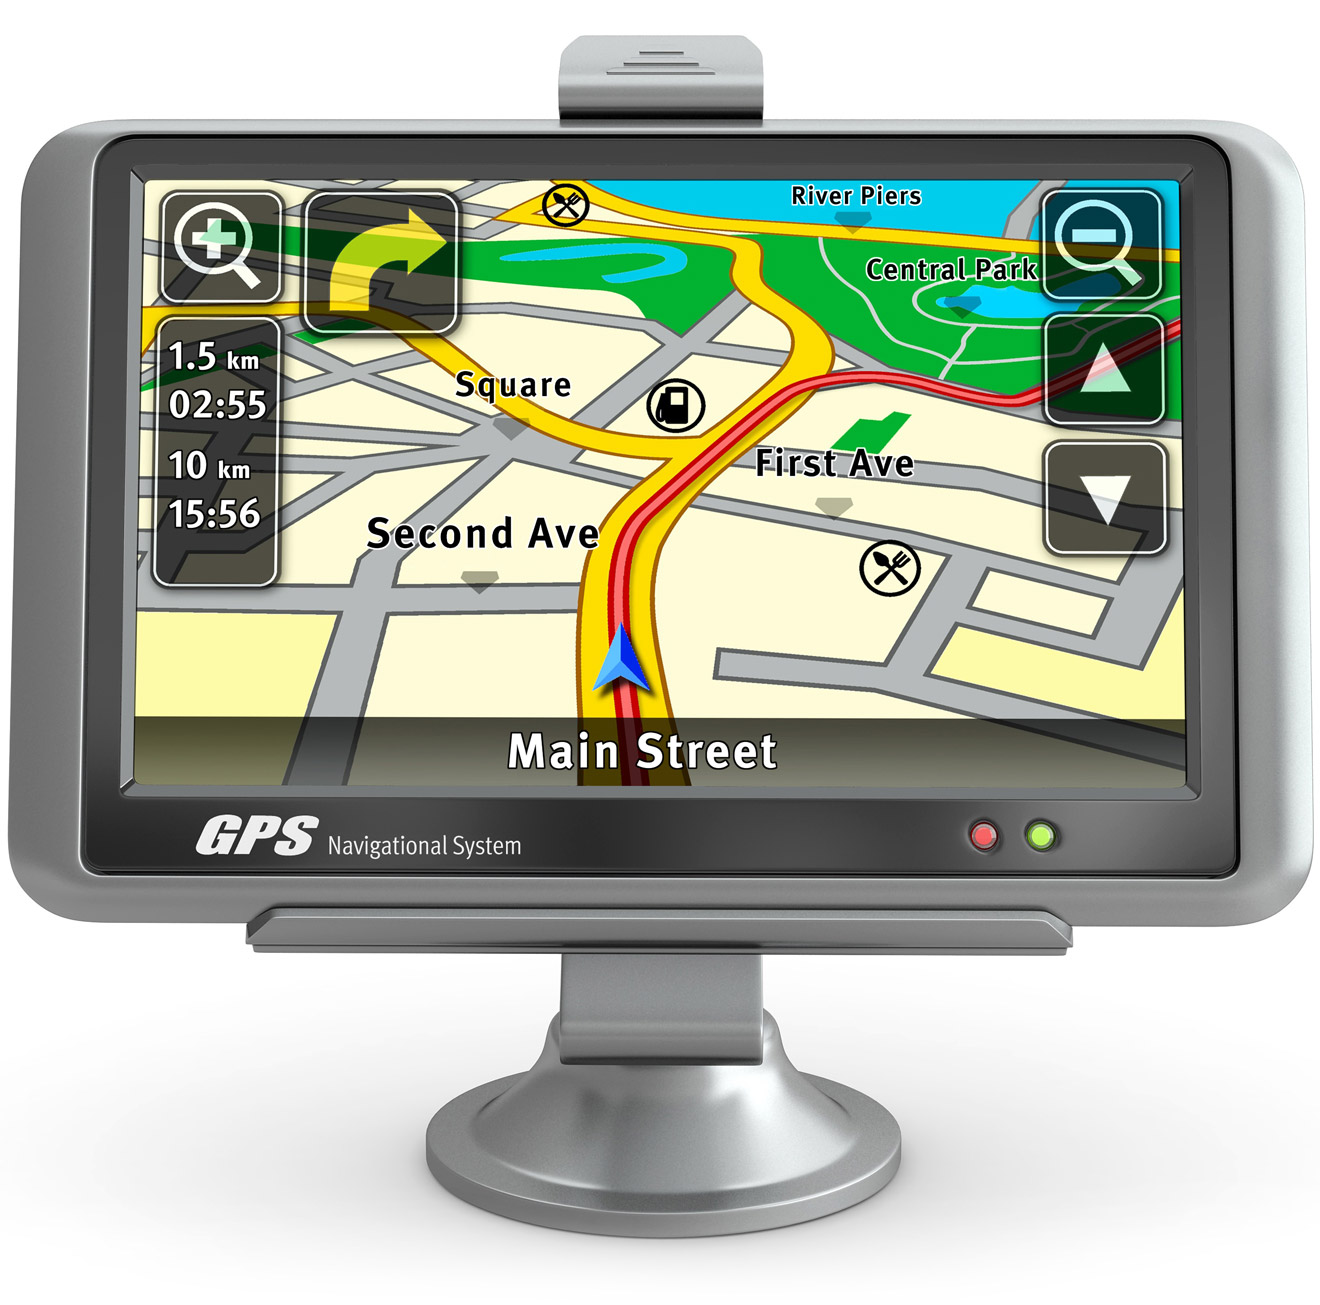 Fictional FF Meta use case in a navigation system.